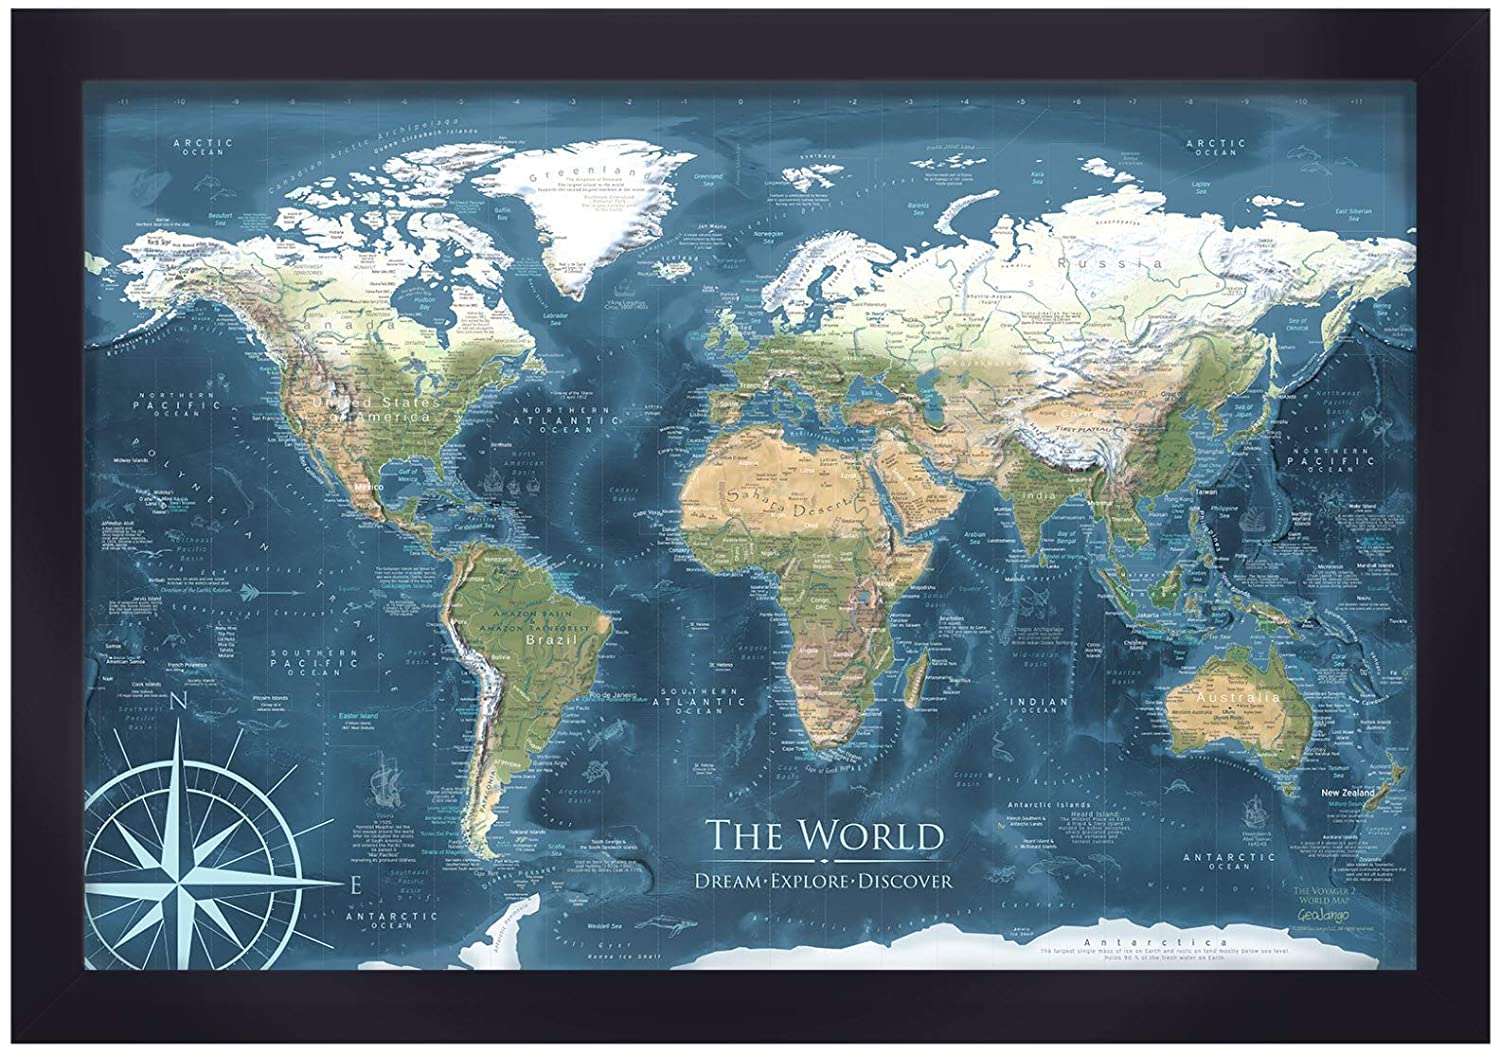 Amazon.com: World Map Push Pin Framed Map - Voyager 2 World ... on ocean depth map, national geographic maps, http google maps, ocean satellite, google marine navigation maps, ocean bathymetry map, ocean wind maps, world underwater relief maps, ocean topography, ocean temperature maps, bathymetry of hawaiian islands maps, ocean bottom maps, very large world maps, ocean world map vector, ocean pacific website, lackawanna pa military maps, bing topographic maps, ocean edge villages map, ocean geography map,